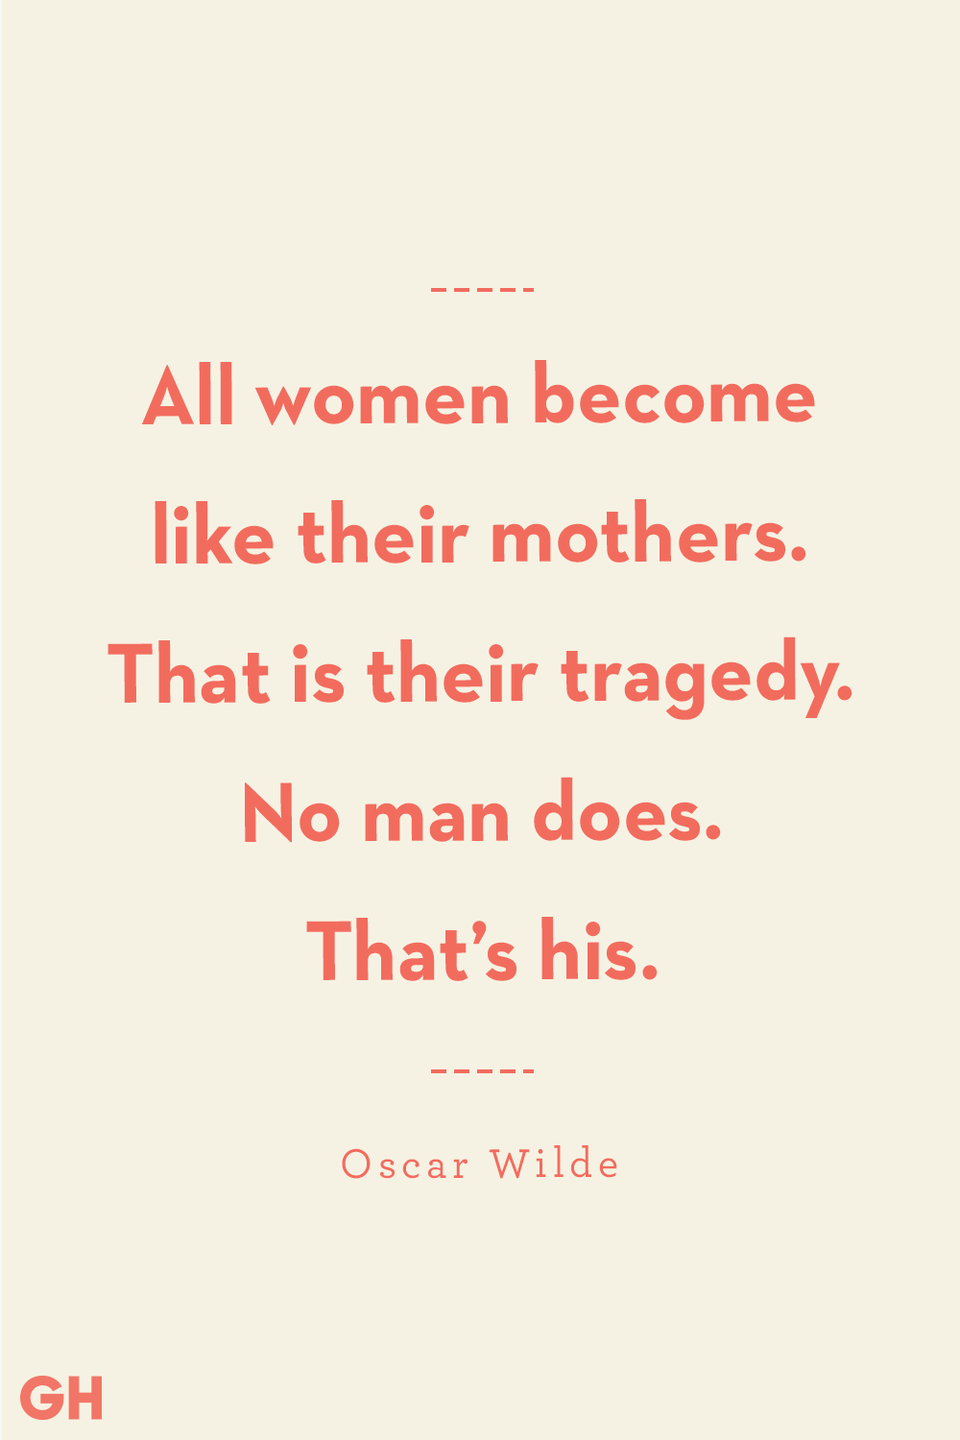 <p>All women become like their mothers. That is their tragedy. No man does. That's his.</p>